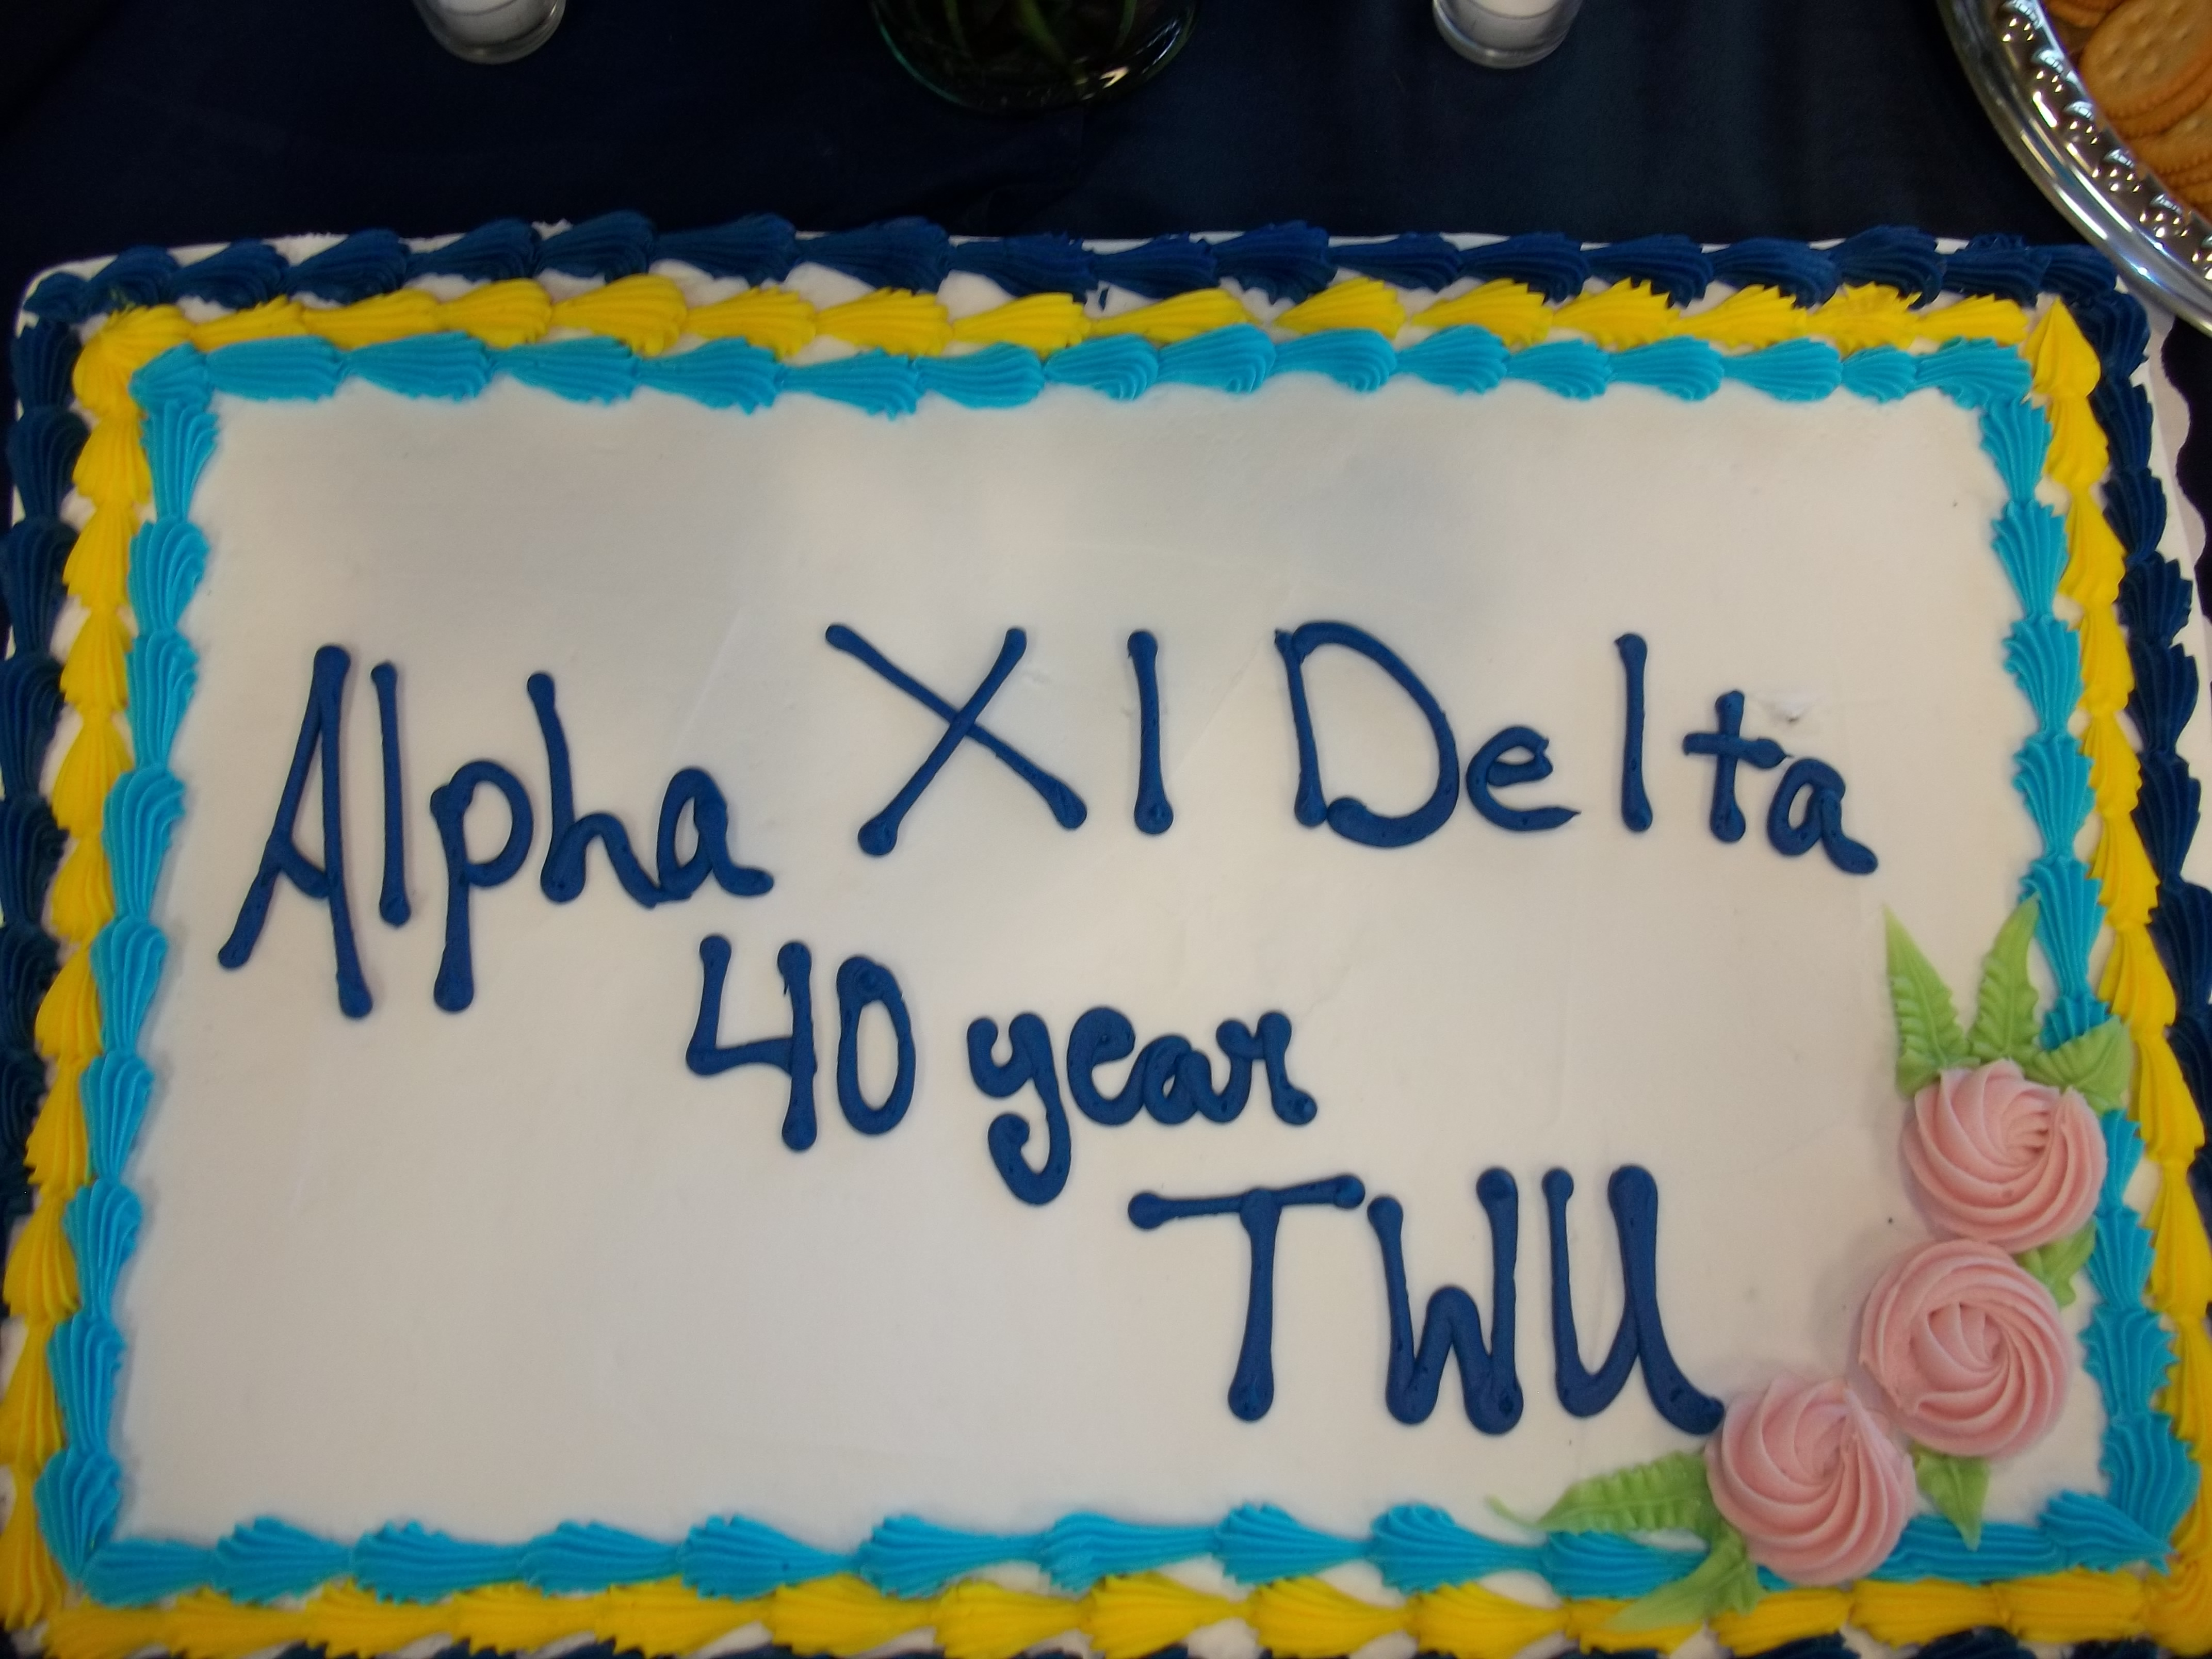 Zeta Lambda's 40th Anniversary Celebration